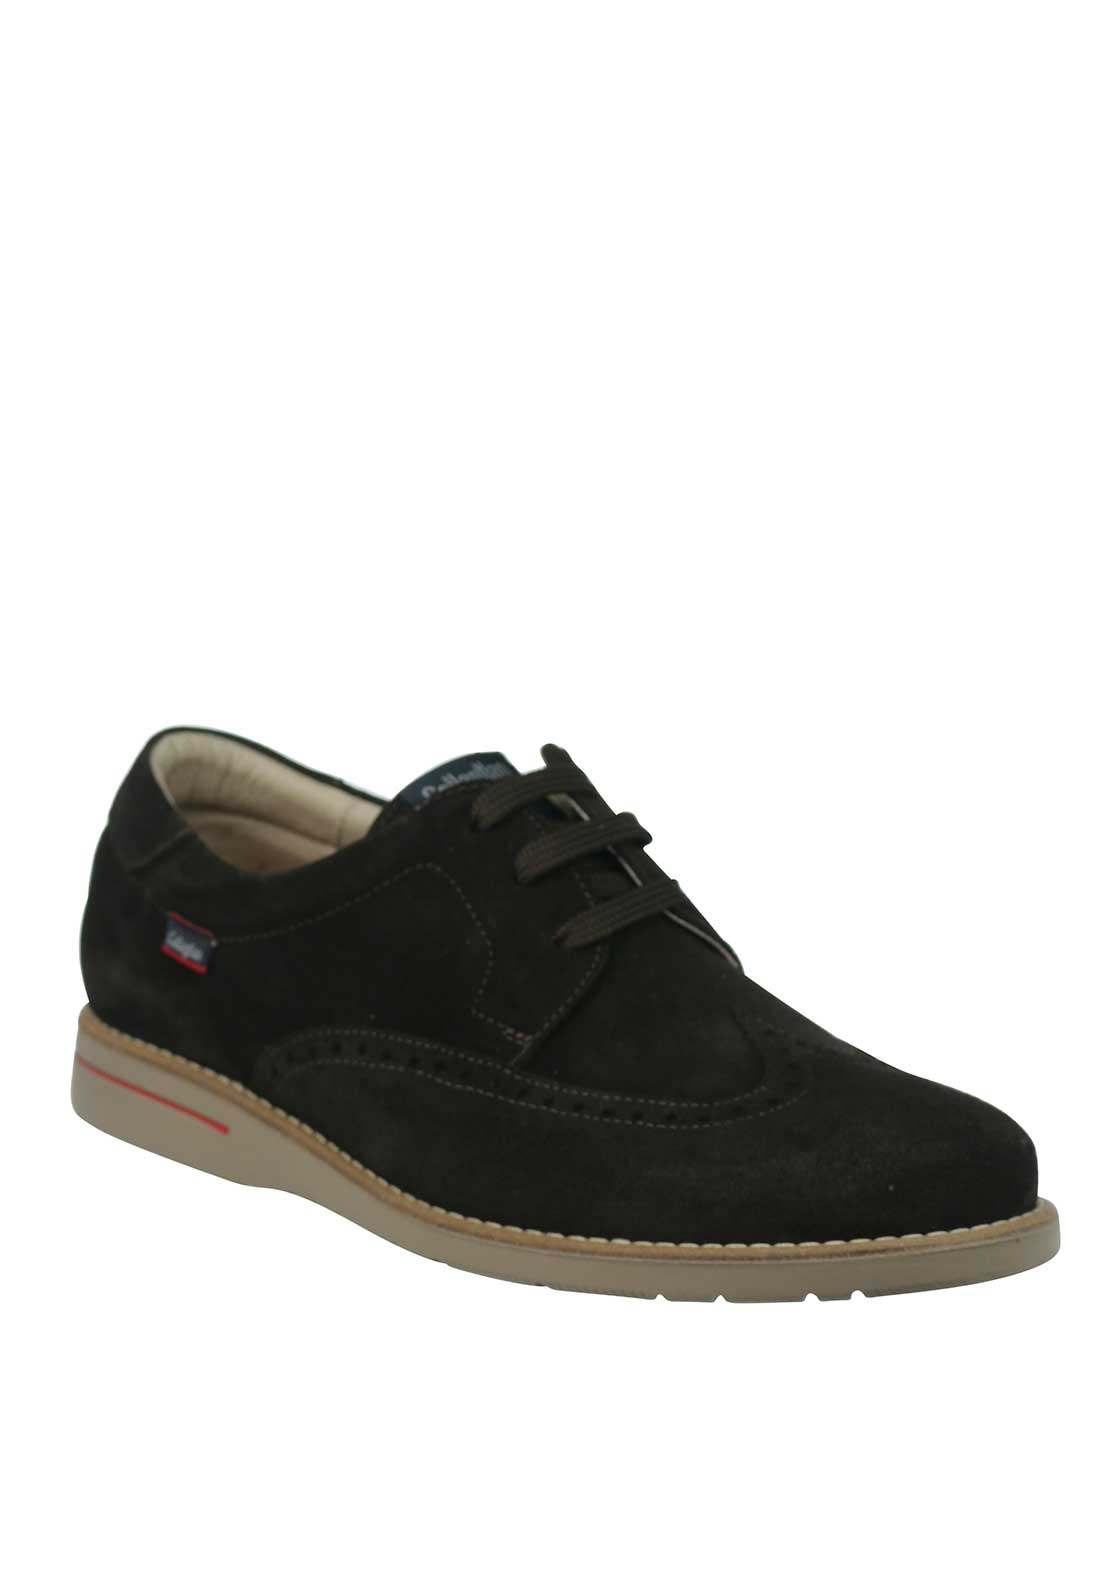 Callaghan Lace Up Suede Brogue Shoe, Dark Brown